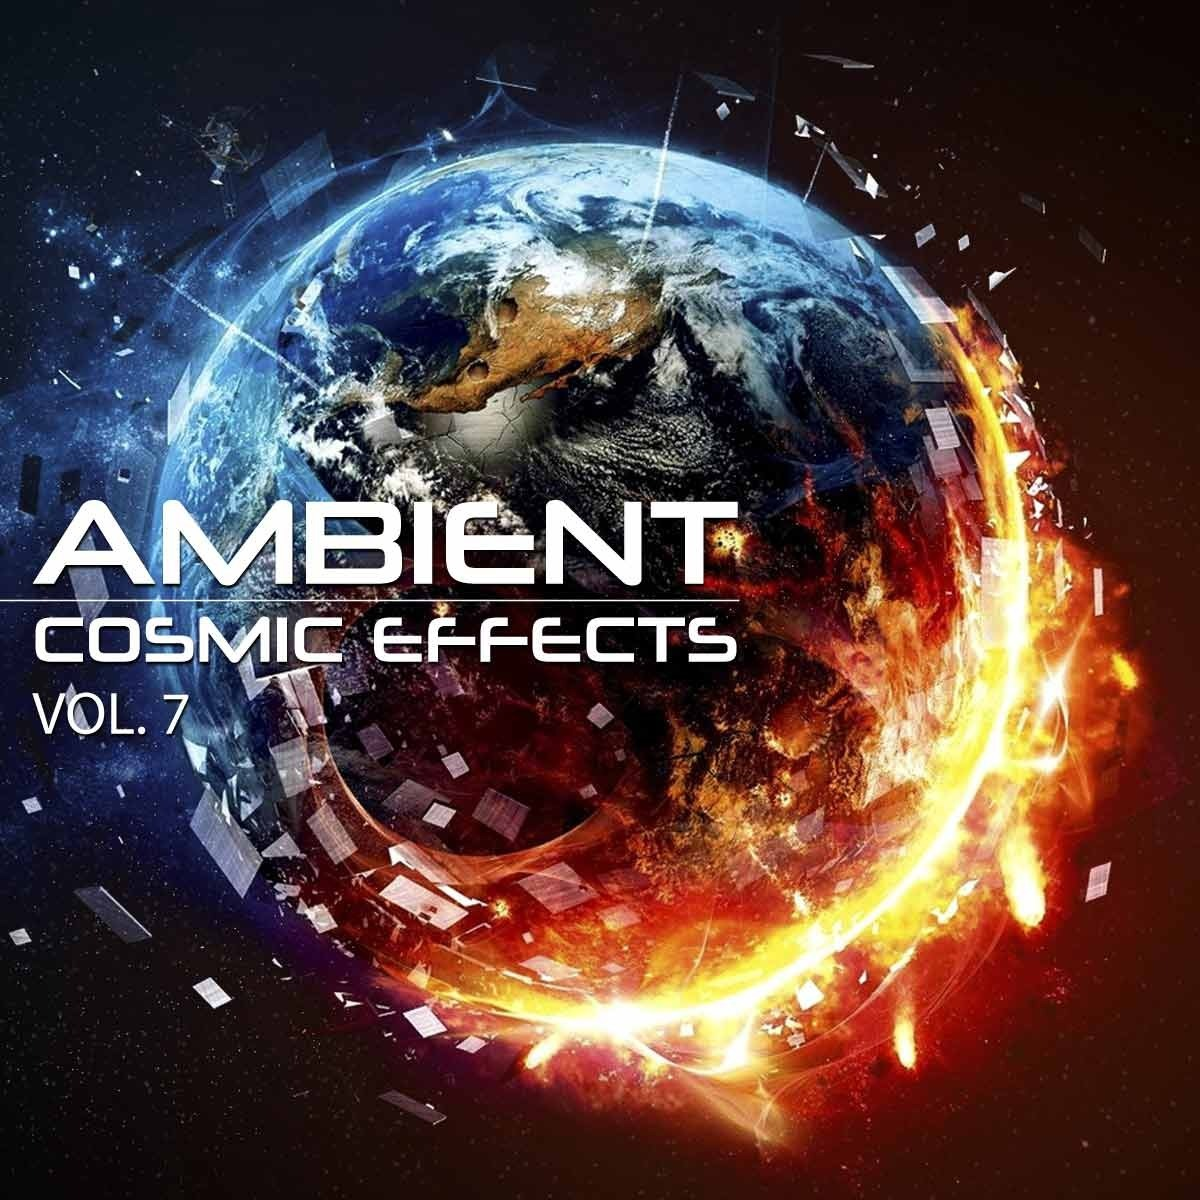 Ambient Cosmic Effects Vol 7